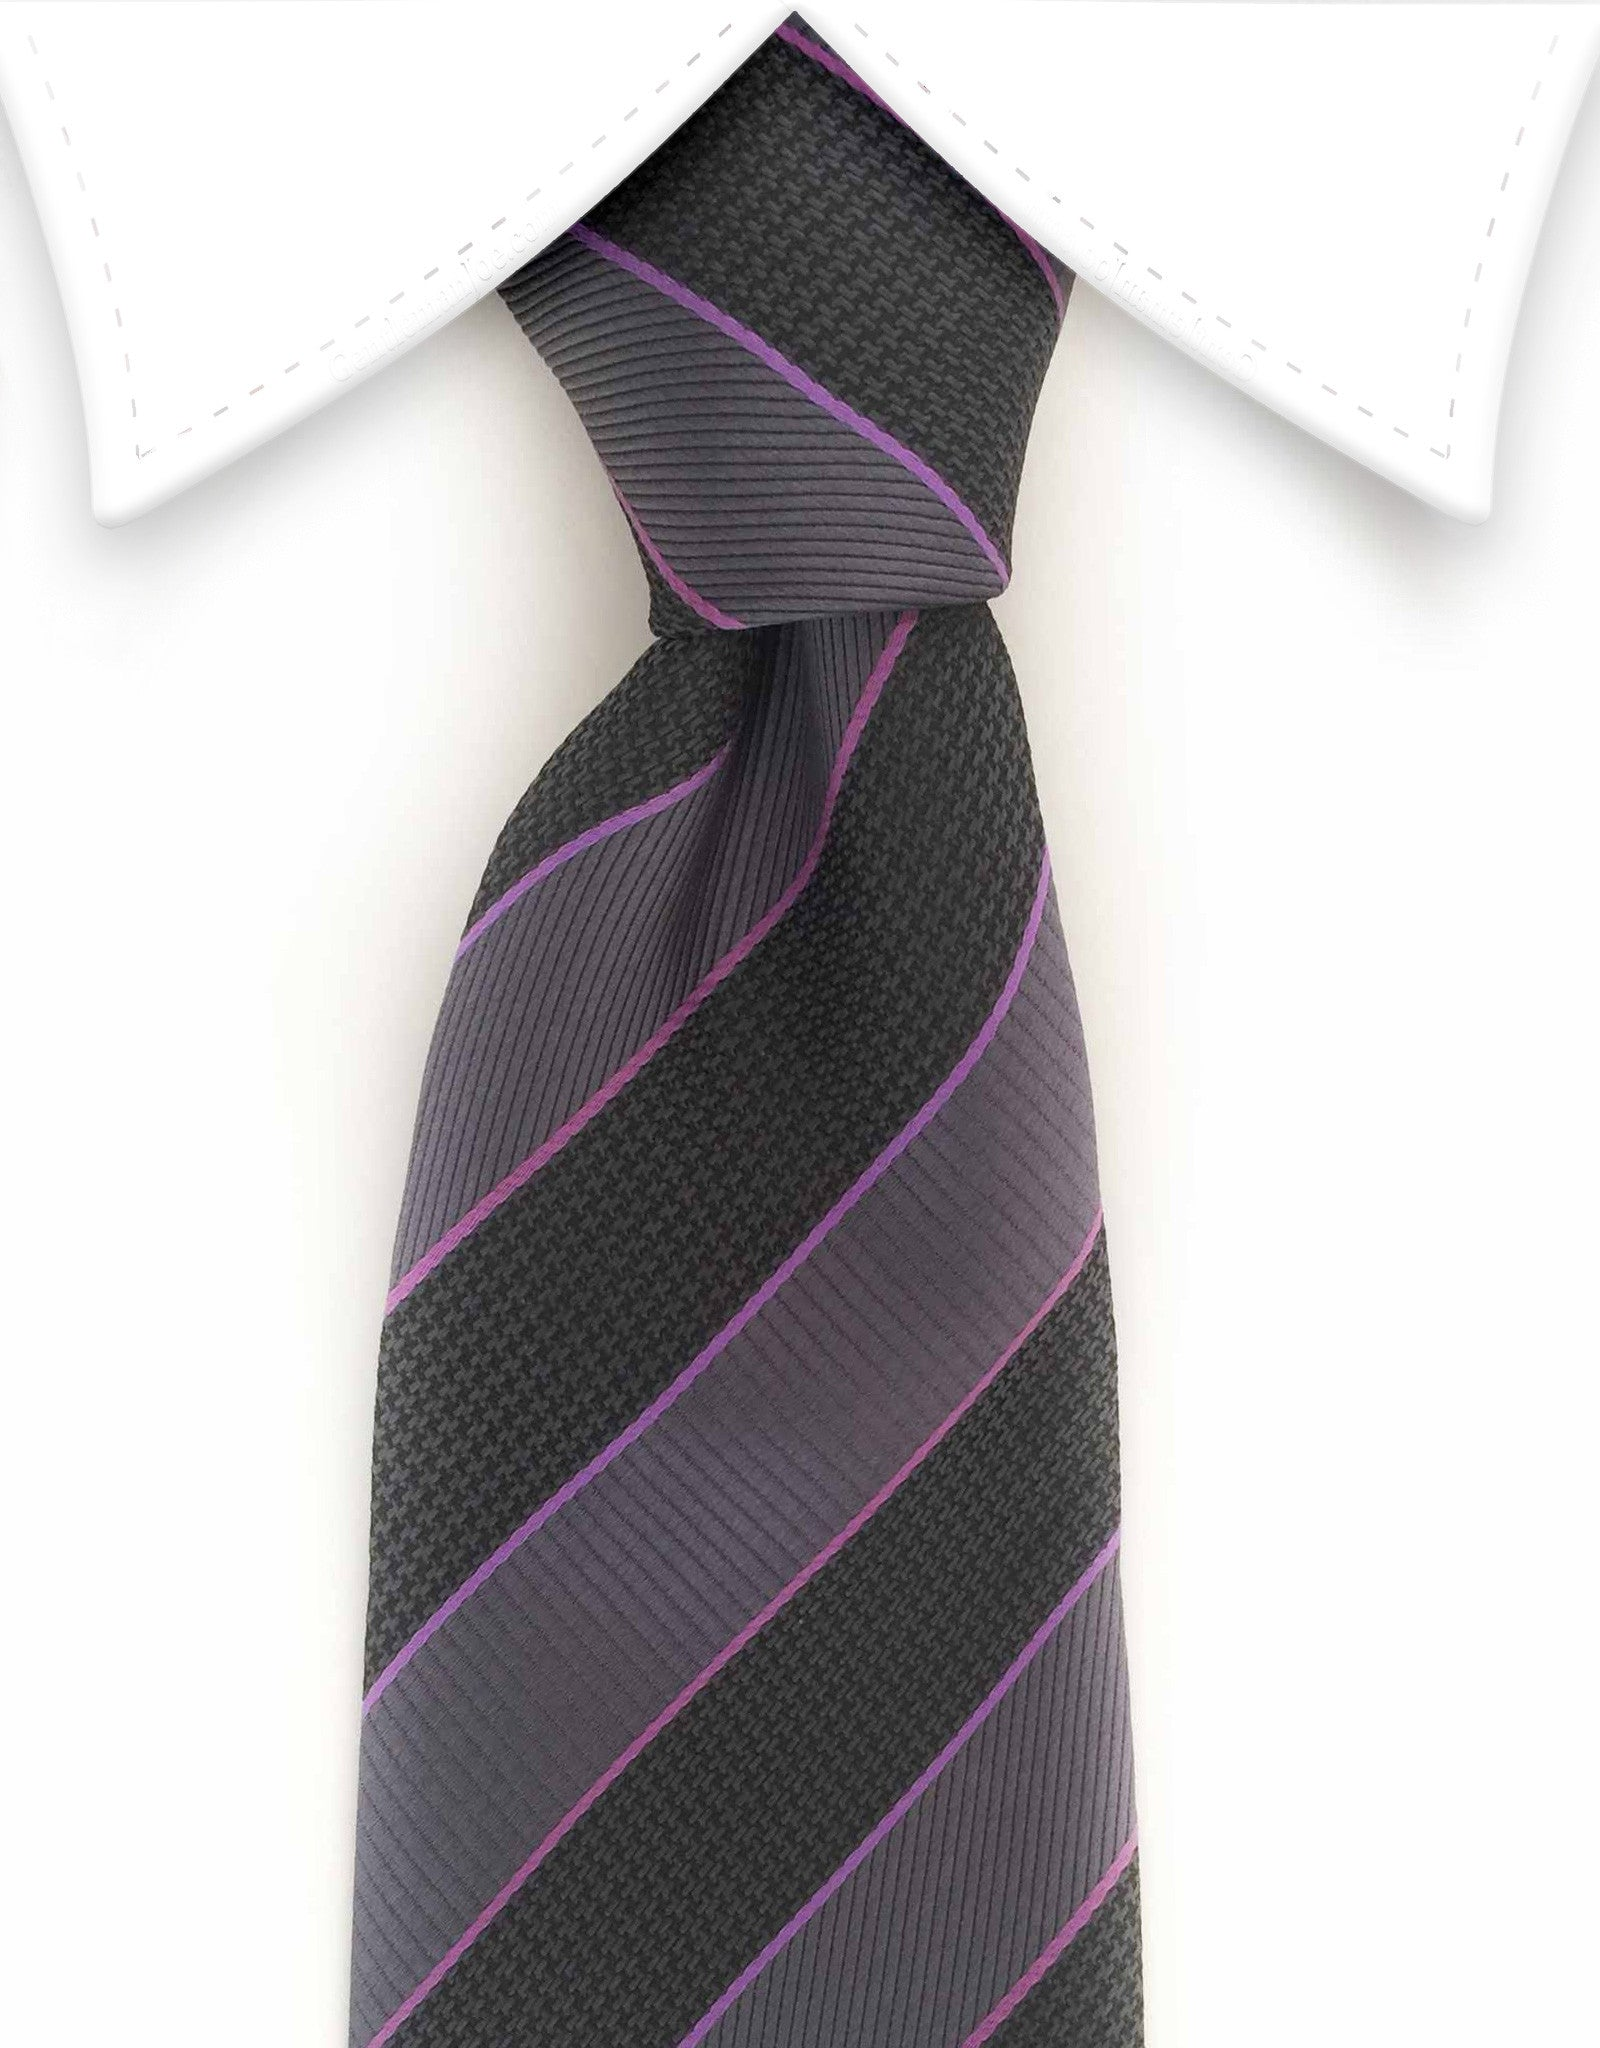 black and charcoal gray striped tie